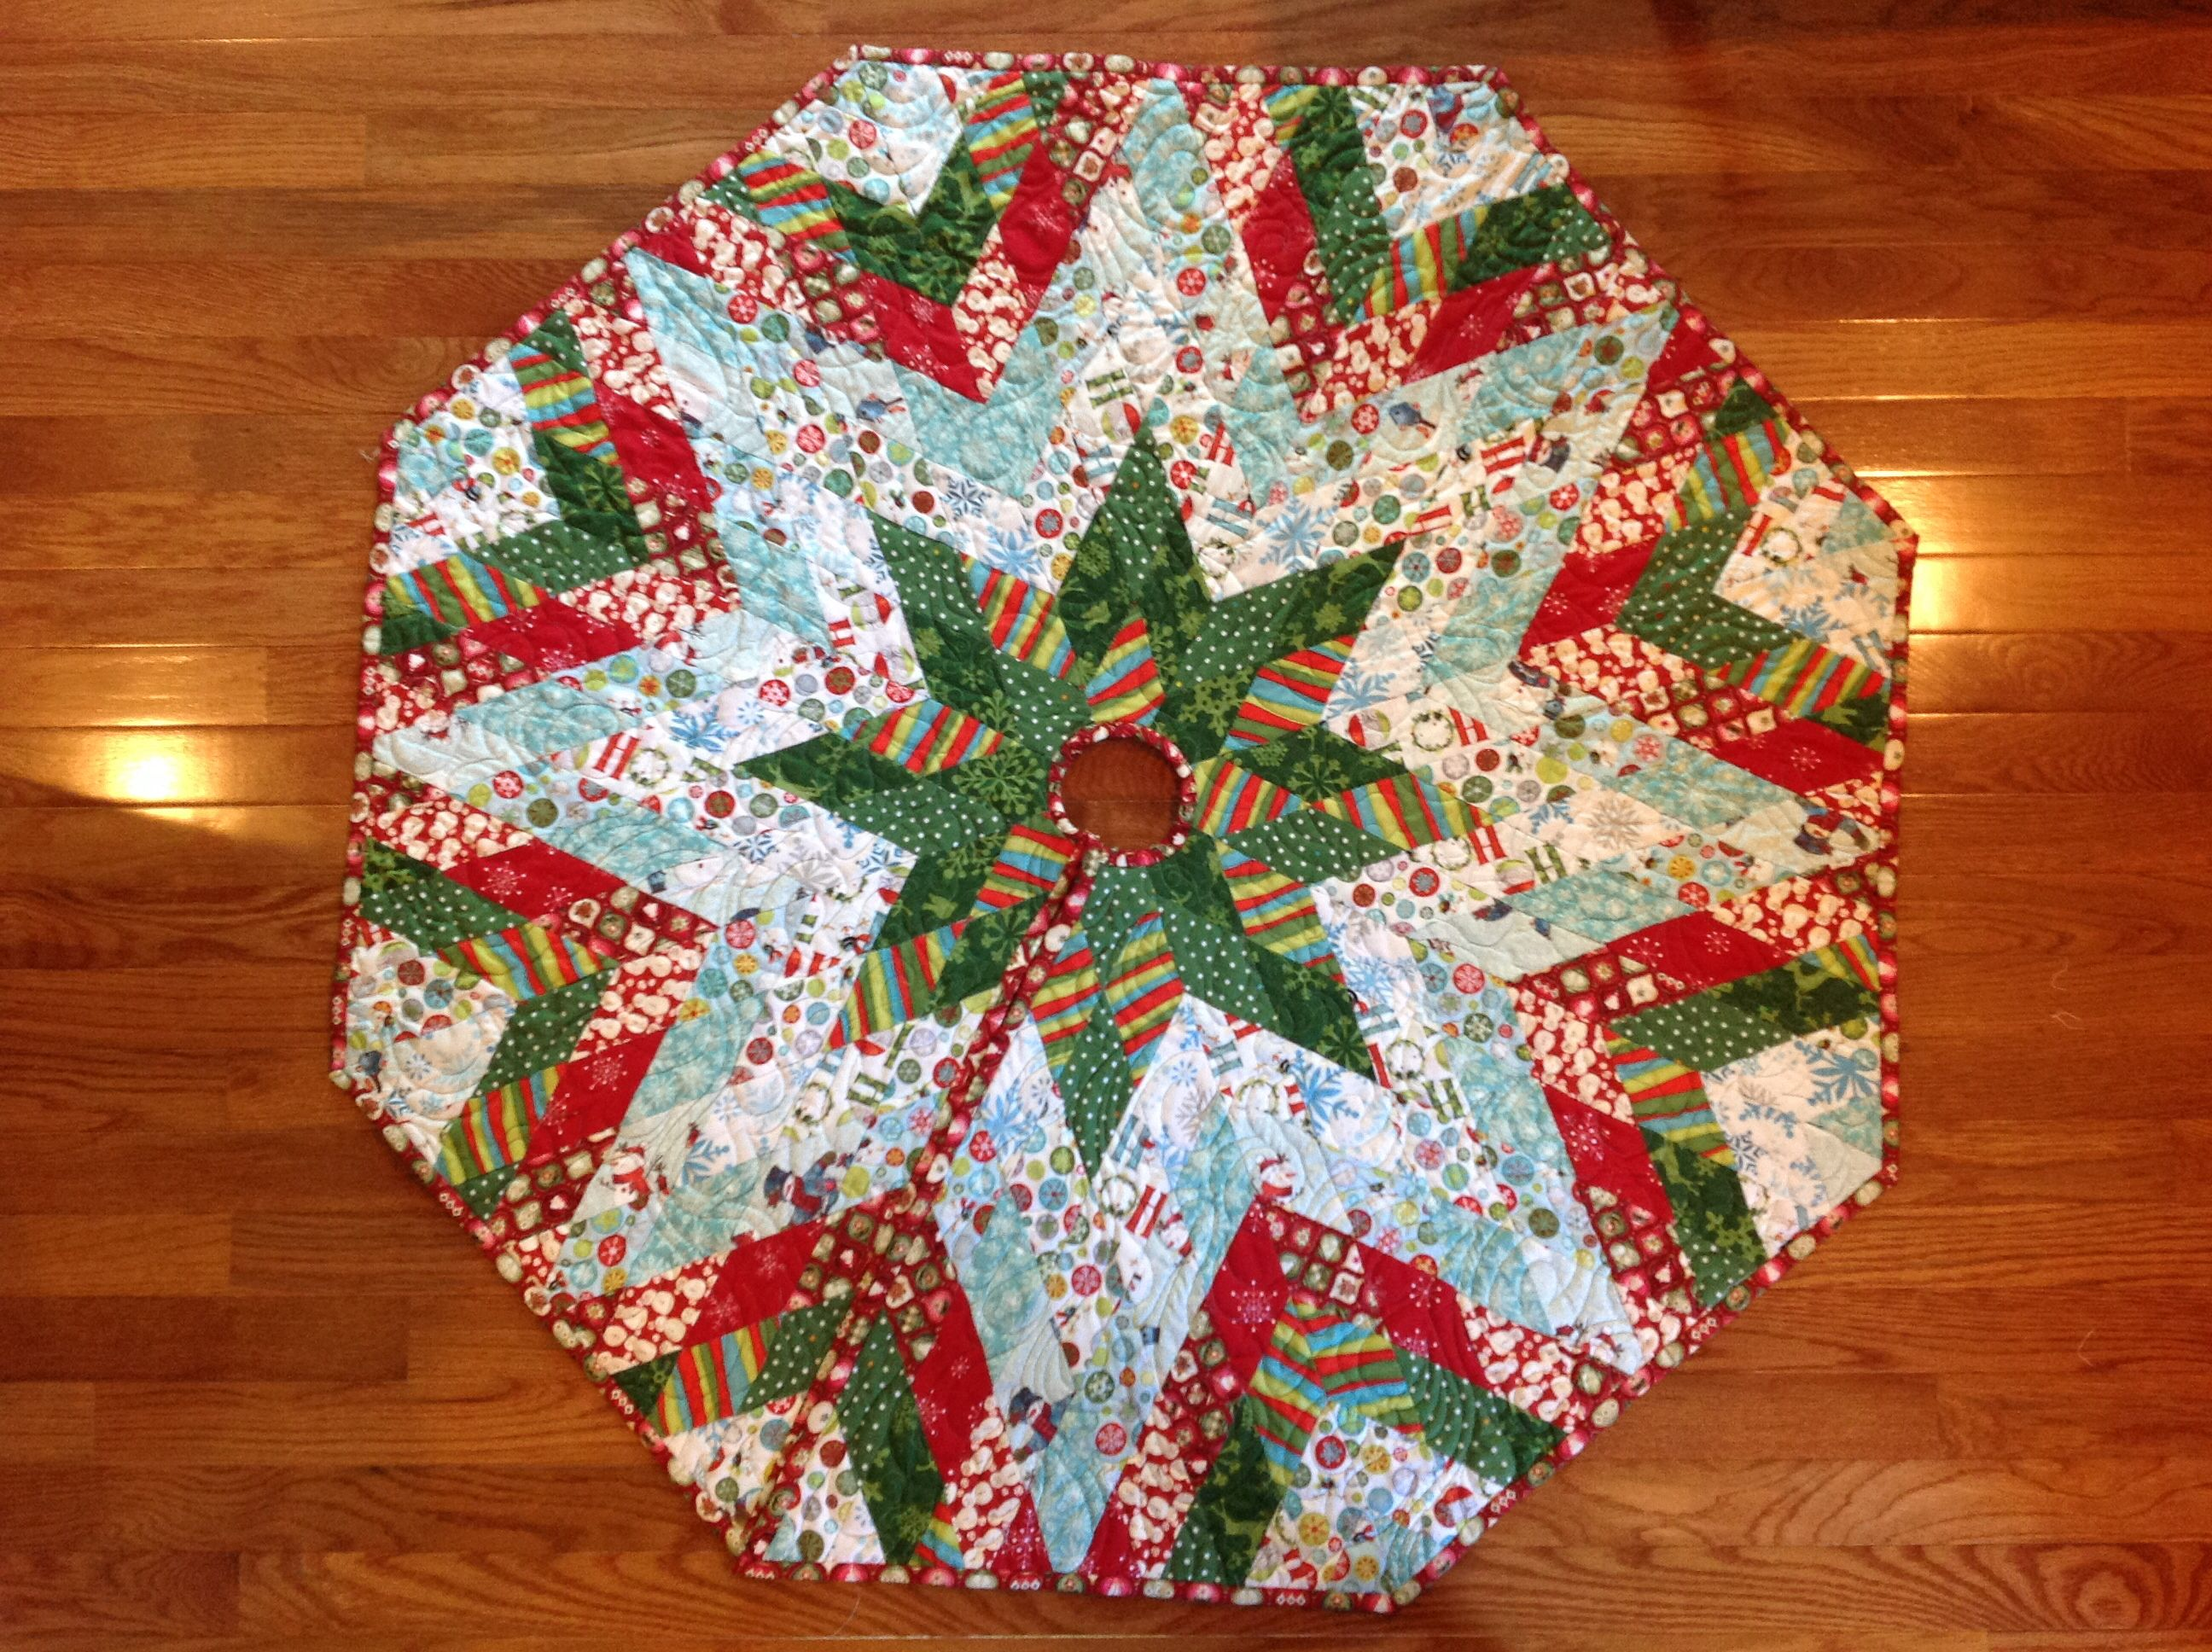 Pin by Christina Potter Bieloh on Makes me want to quilt ...